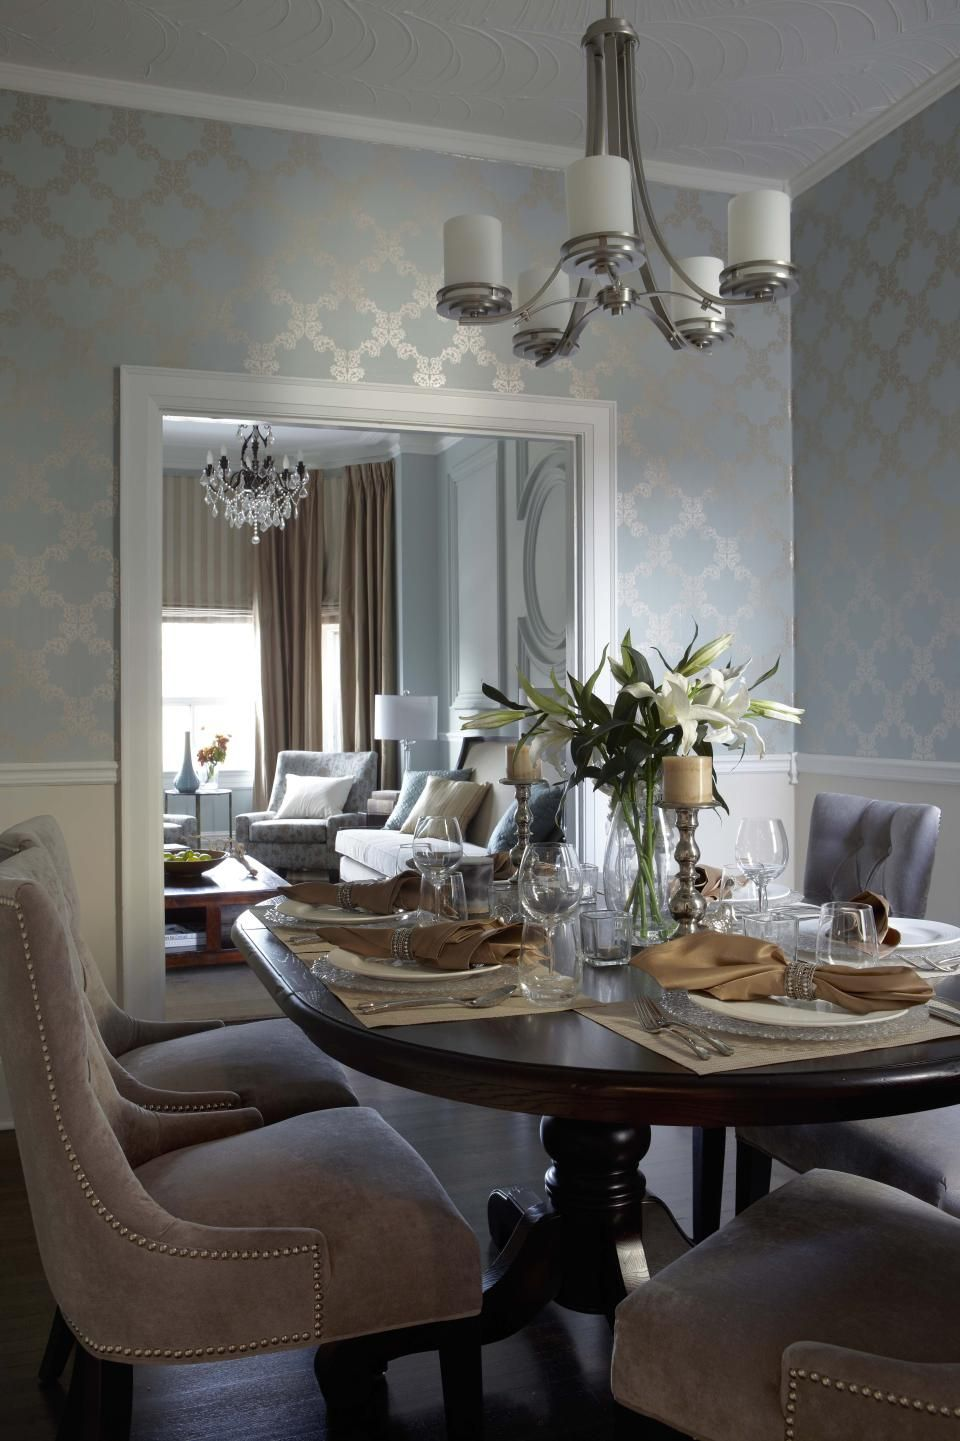 Great Contemporary Transitional French Country Dining Room Design Photo By LUX  Design Album   Residential Design, Shaw Residence